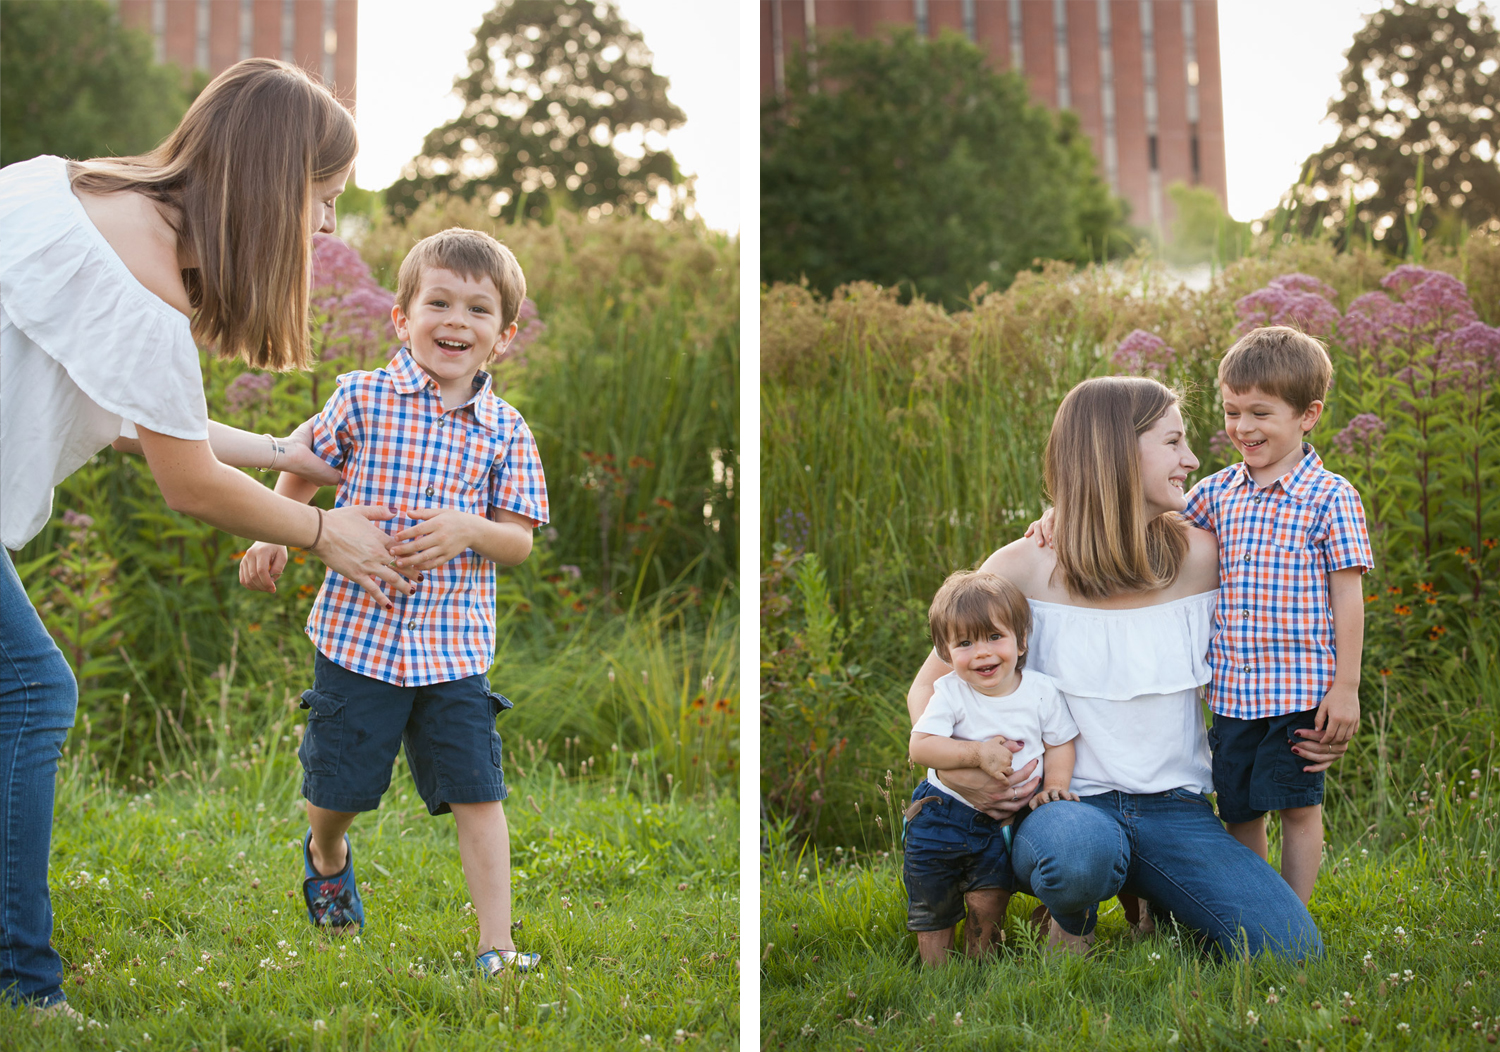 Two photos of a young mom smiling at her two sons, one wearing a plaid shirt and the toddler wearing white.